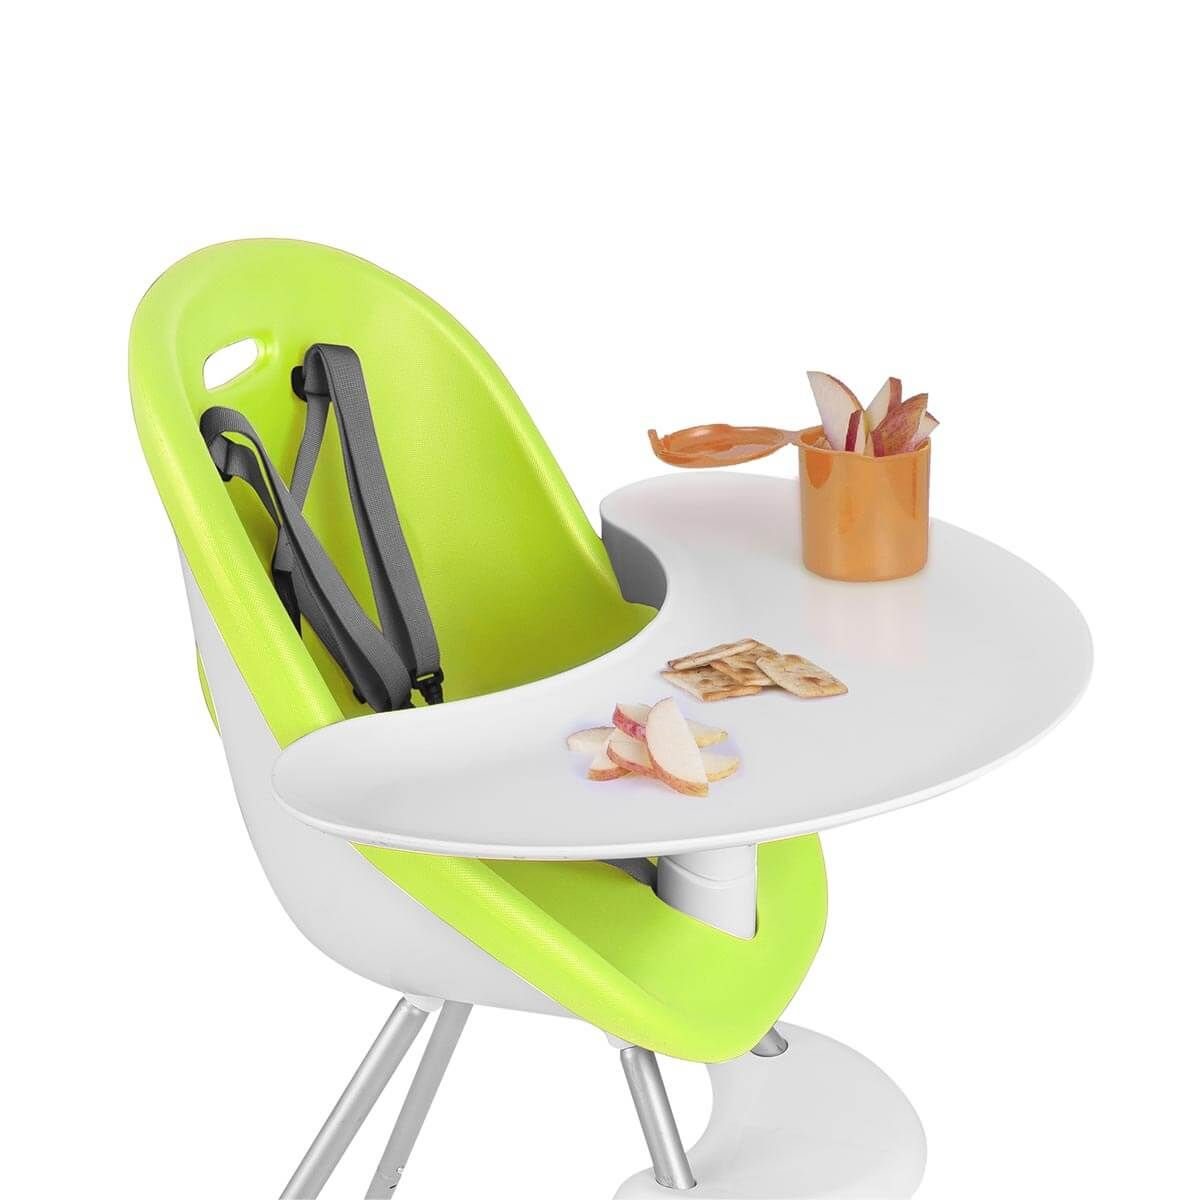 Philu0026teds Poppy Baby High Chair With Food Tray In Lime | Poppy Highchair |  Pinterest | Food Trays And High Chairs